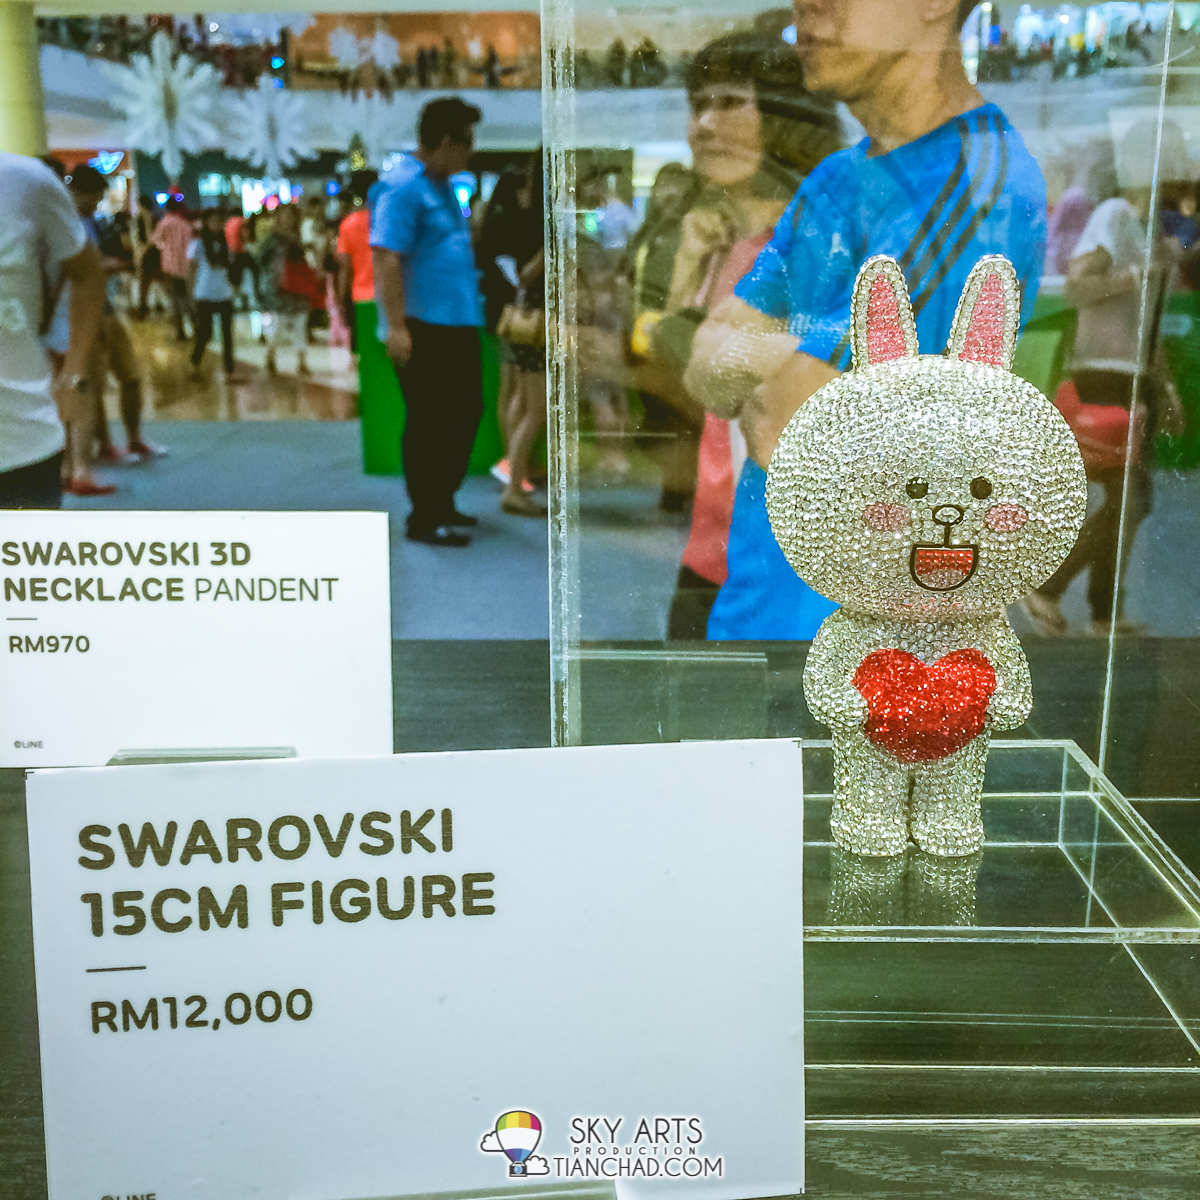 Cony Swarovski Figure at RM12,000 selling at LINE Friends Pop-Up Store